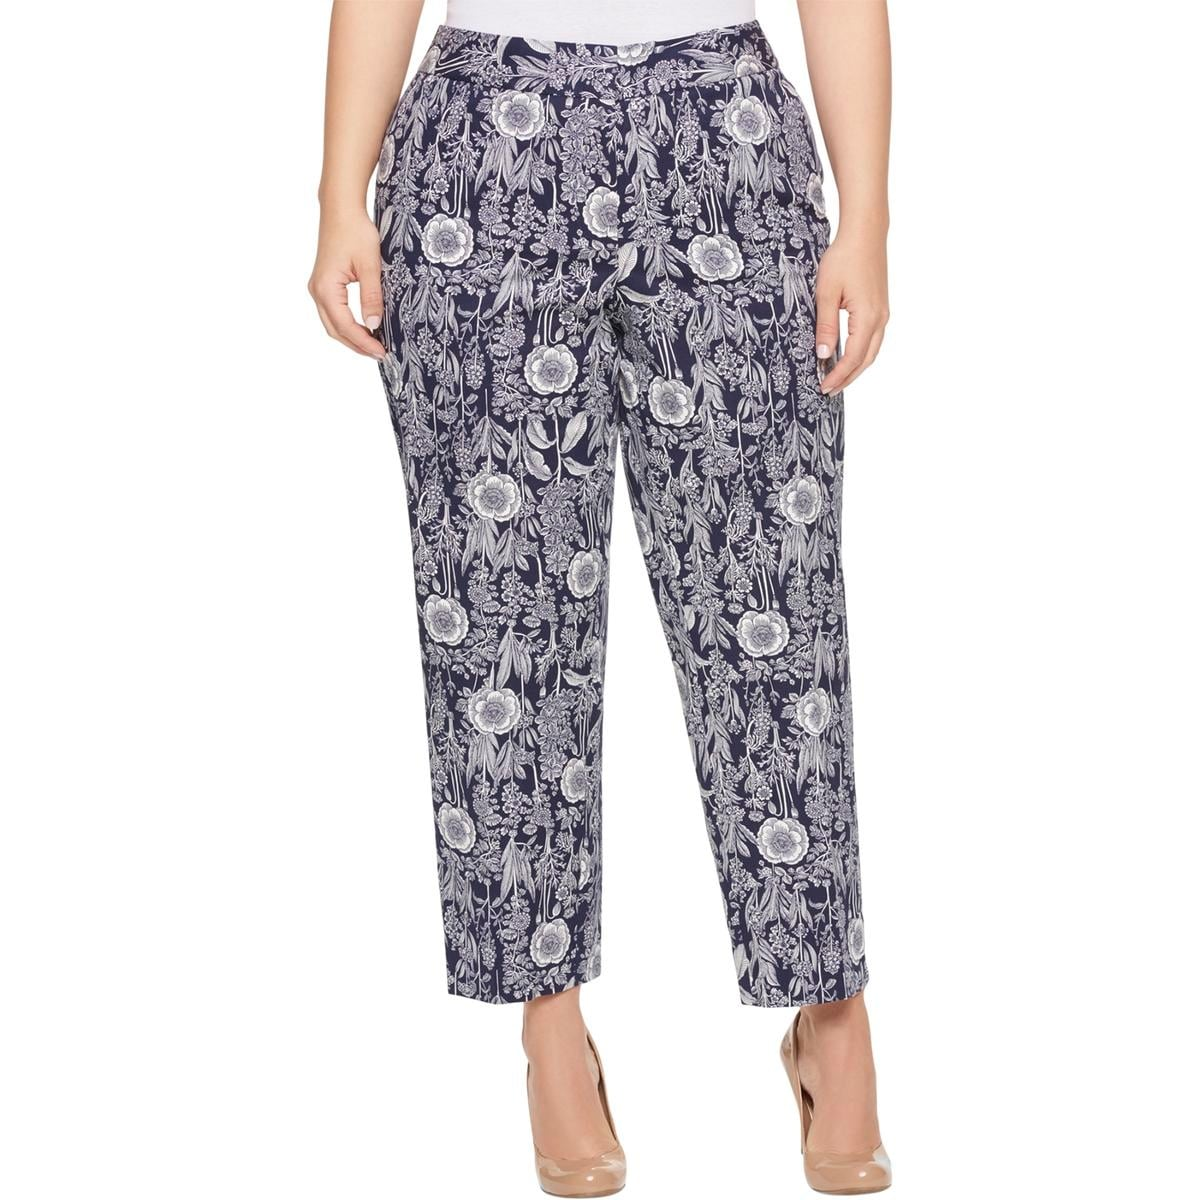 636b9915 Shop Tommy Hilfiger Womens Plus Cropped Pants Floral Print Casual - Free  Shipping On Orders Over $45 - Overstock.com - 21707820